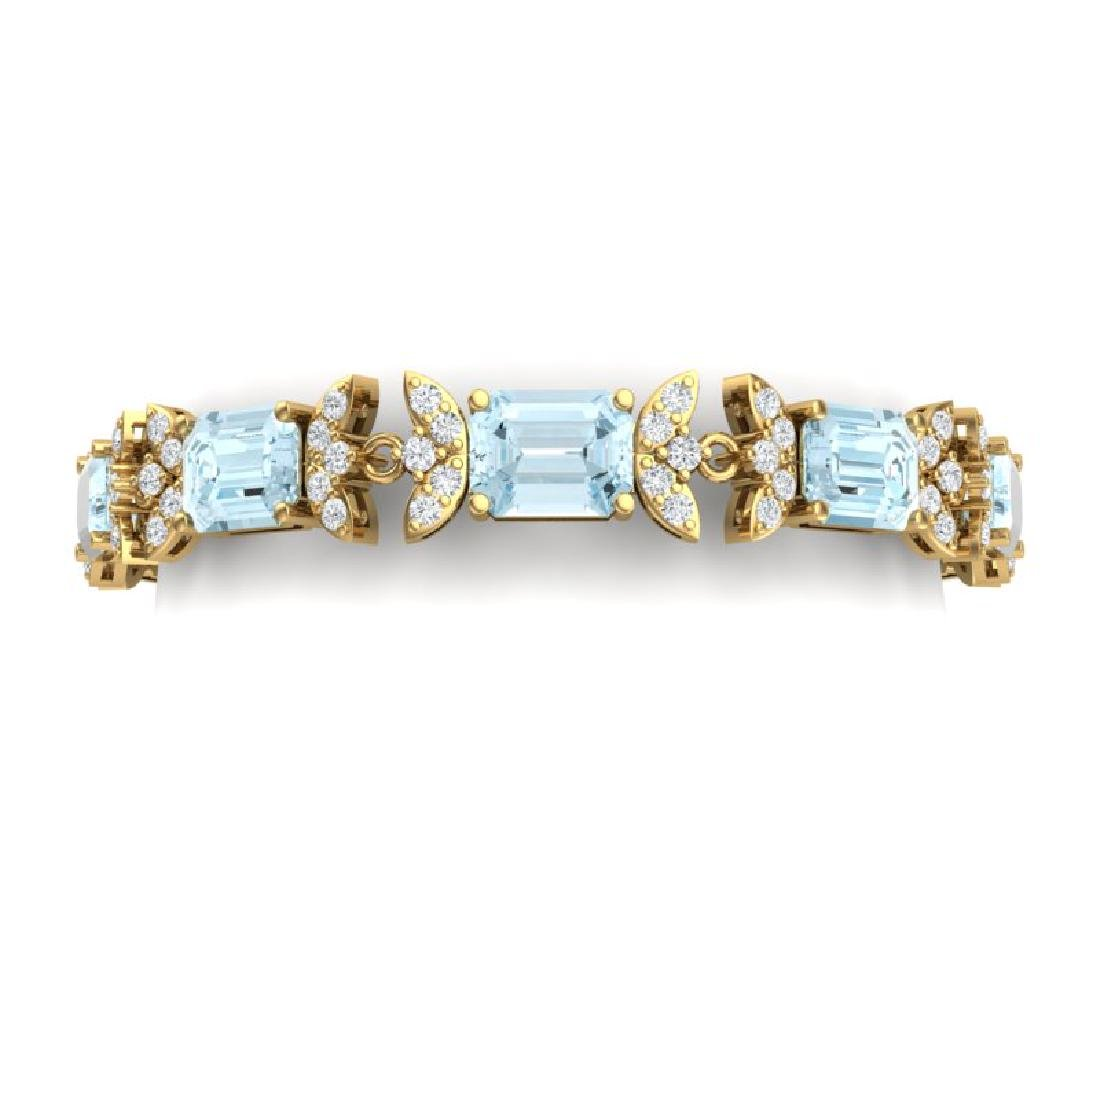 39.65 CTW Royalty Sky Topaz & VS Diamond Bracelet 18K